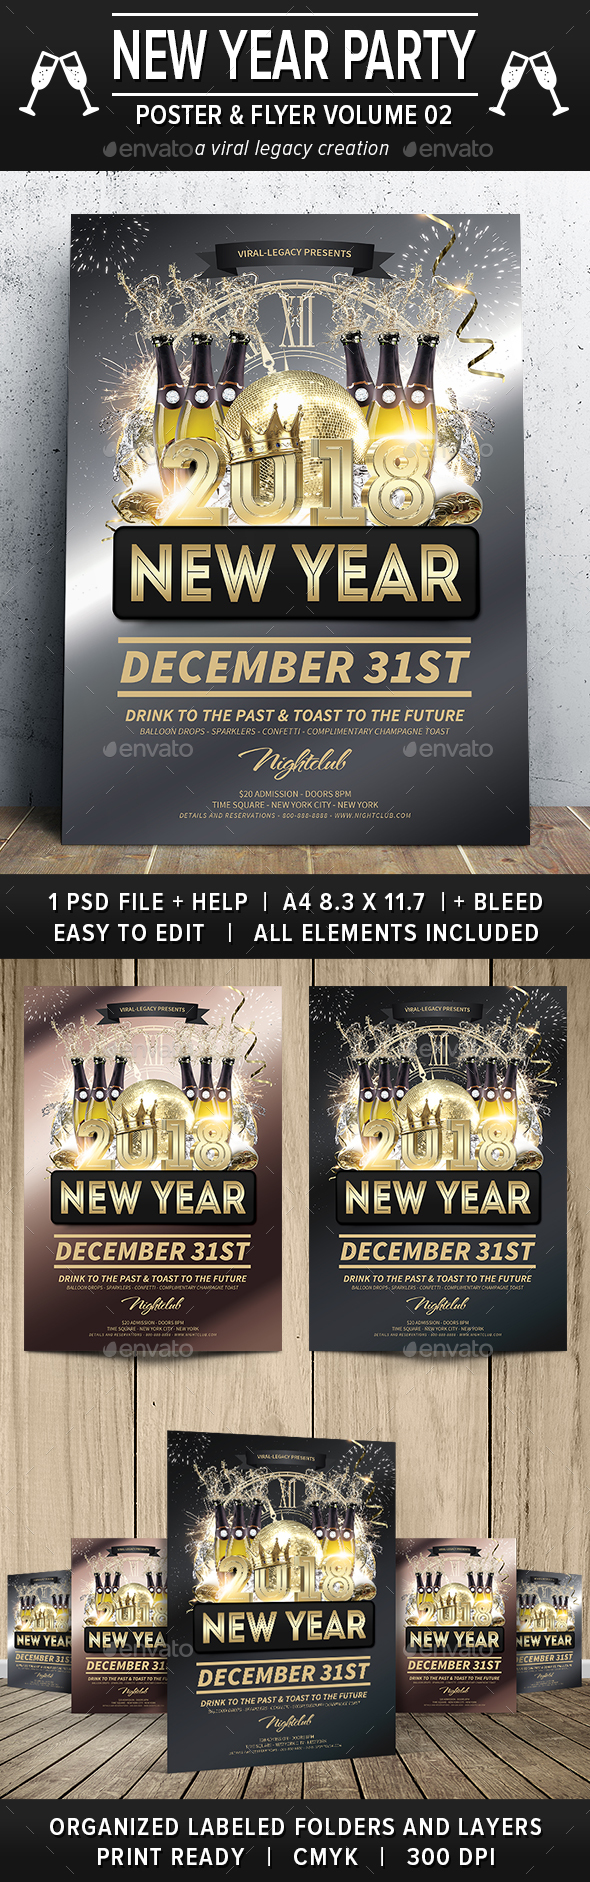 New Year Party Poster / Flyer V02 - Events Flyers